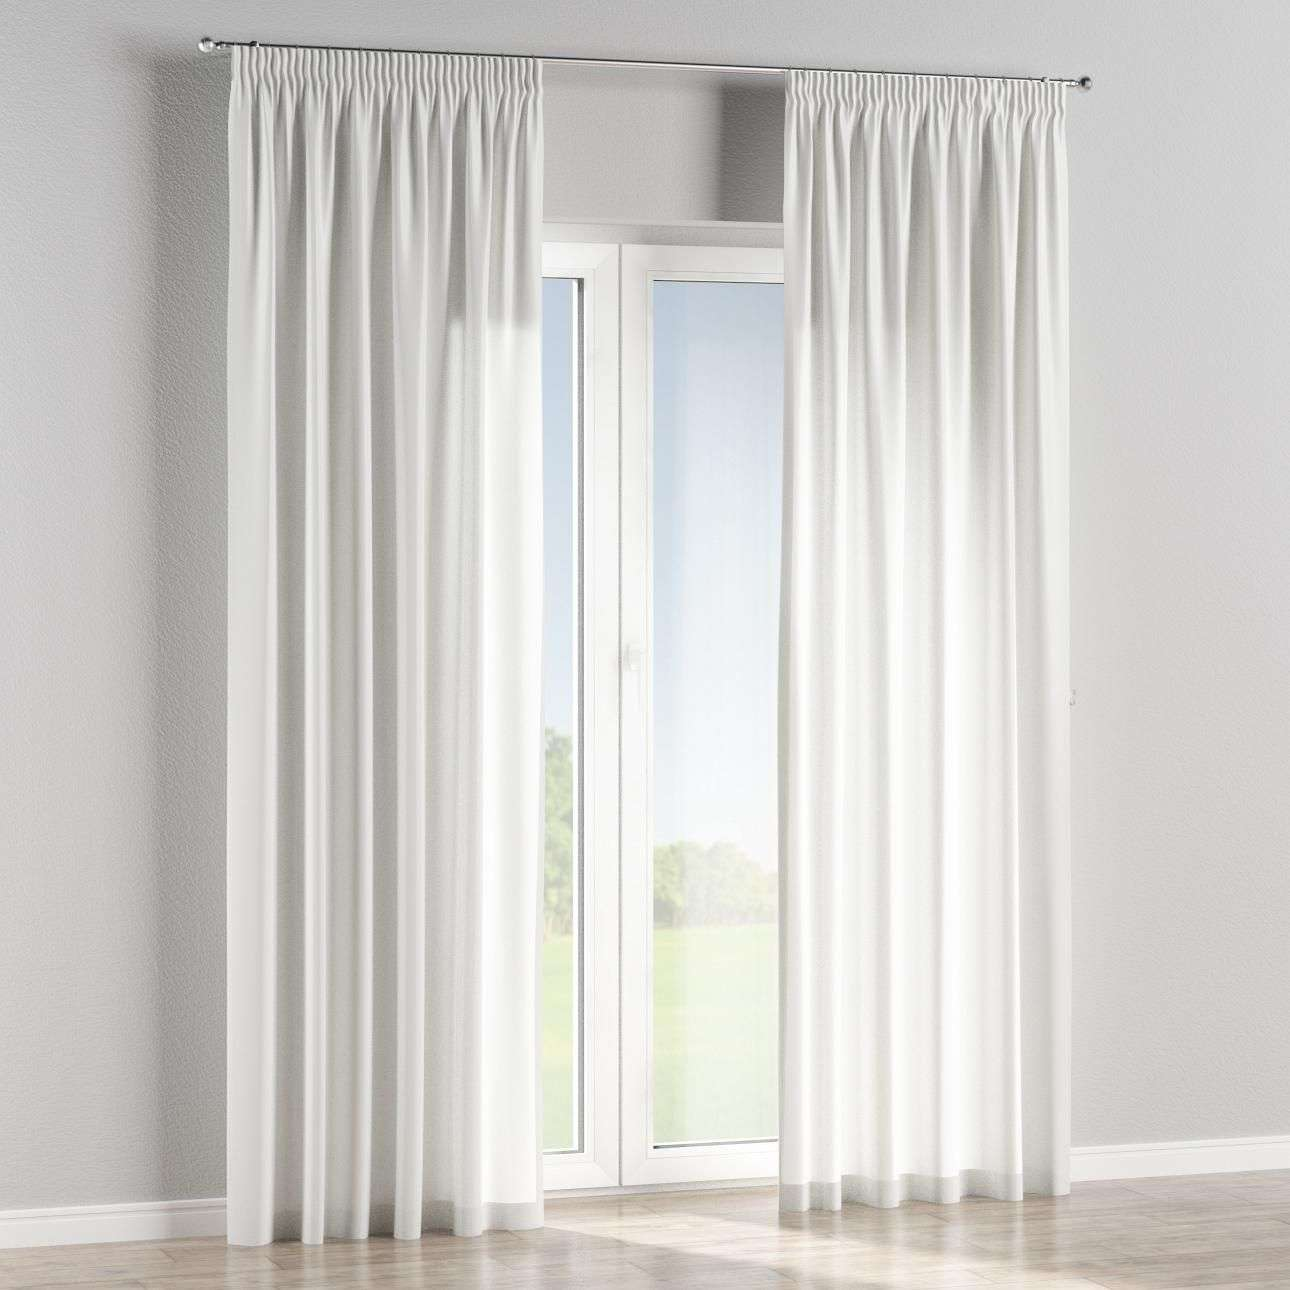 Pencil pleat lined curtains in collection Rustica, fabric: 138-23